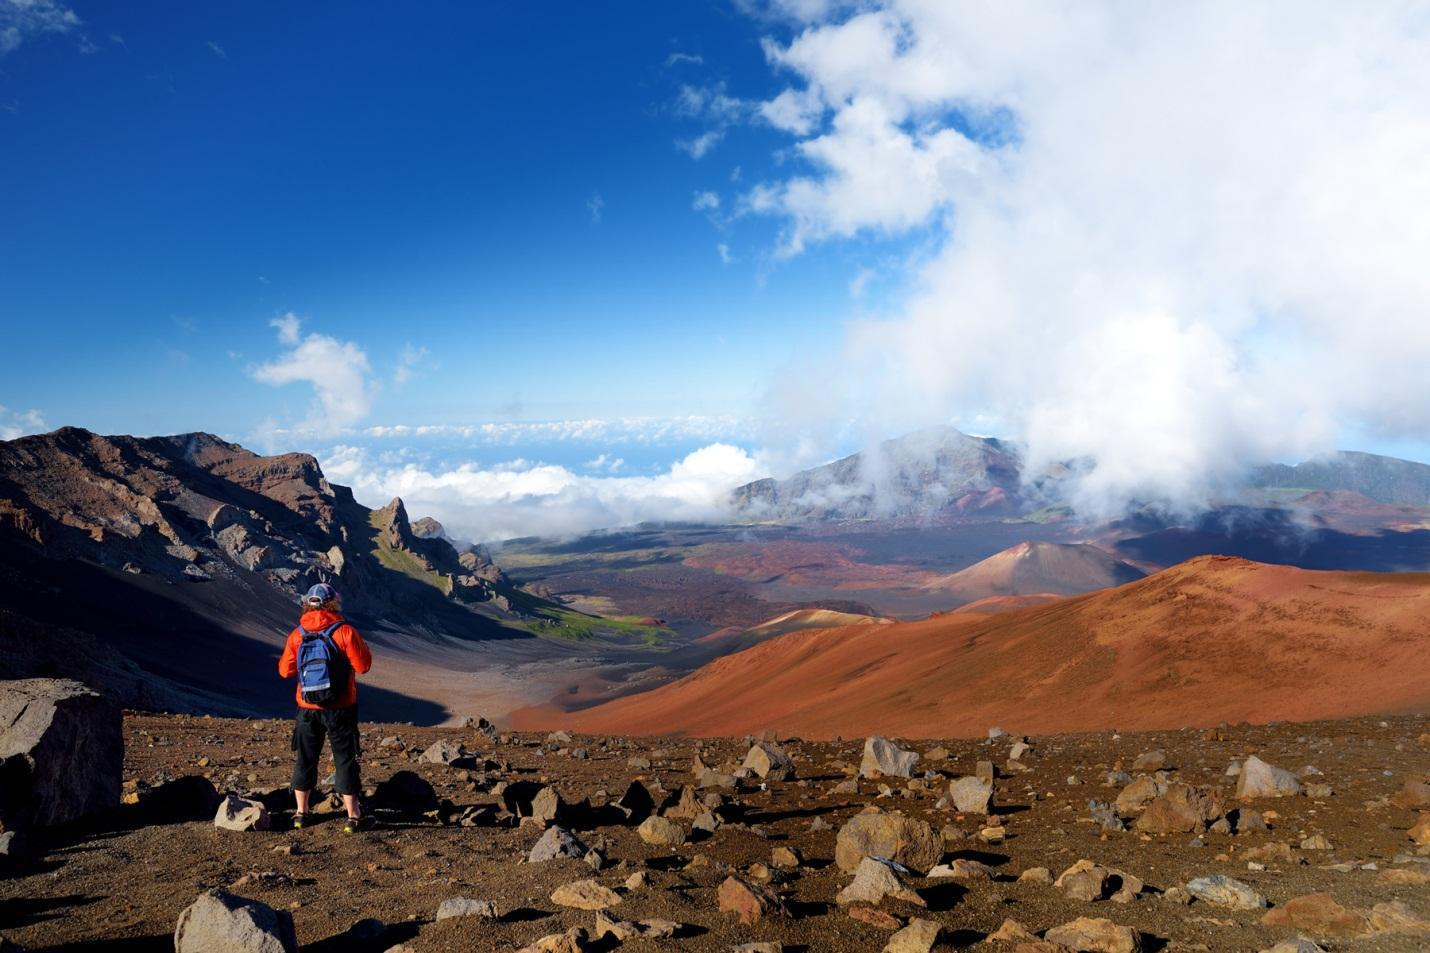 10 Best Places to Go Hiking in Hawaii | Travel + Leisure